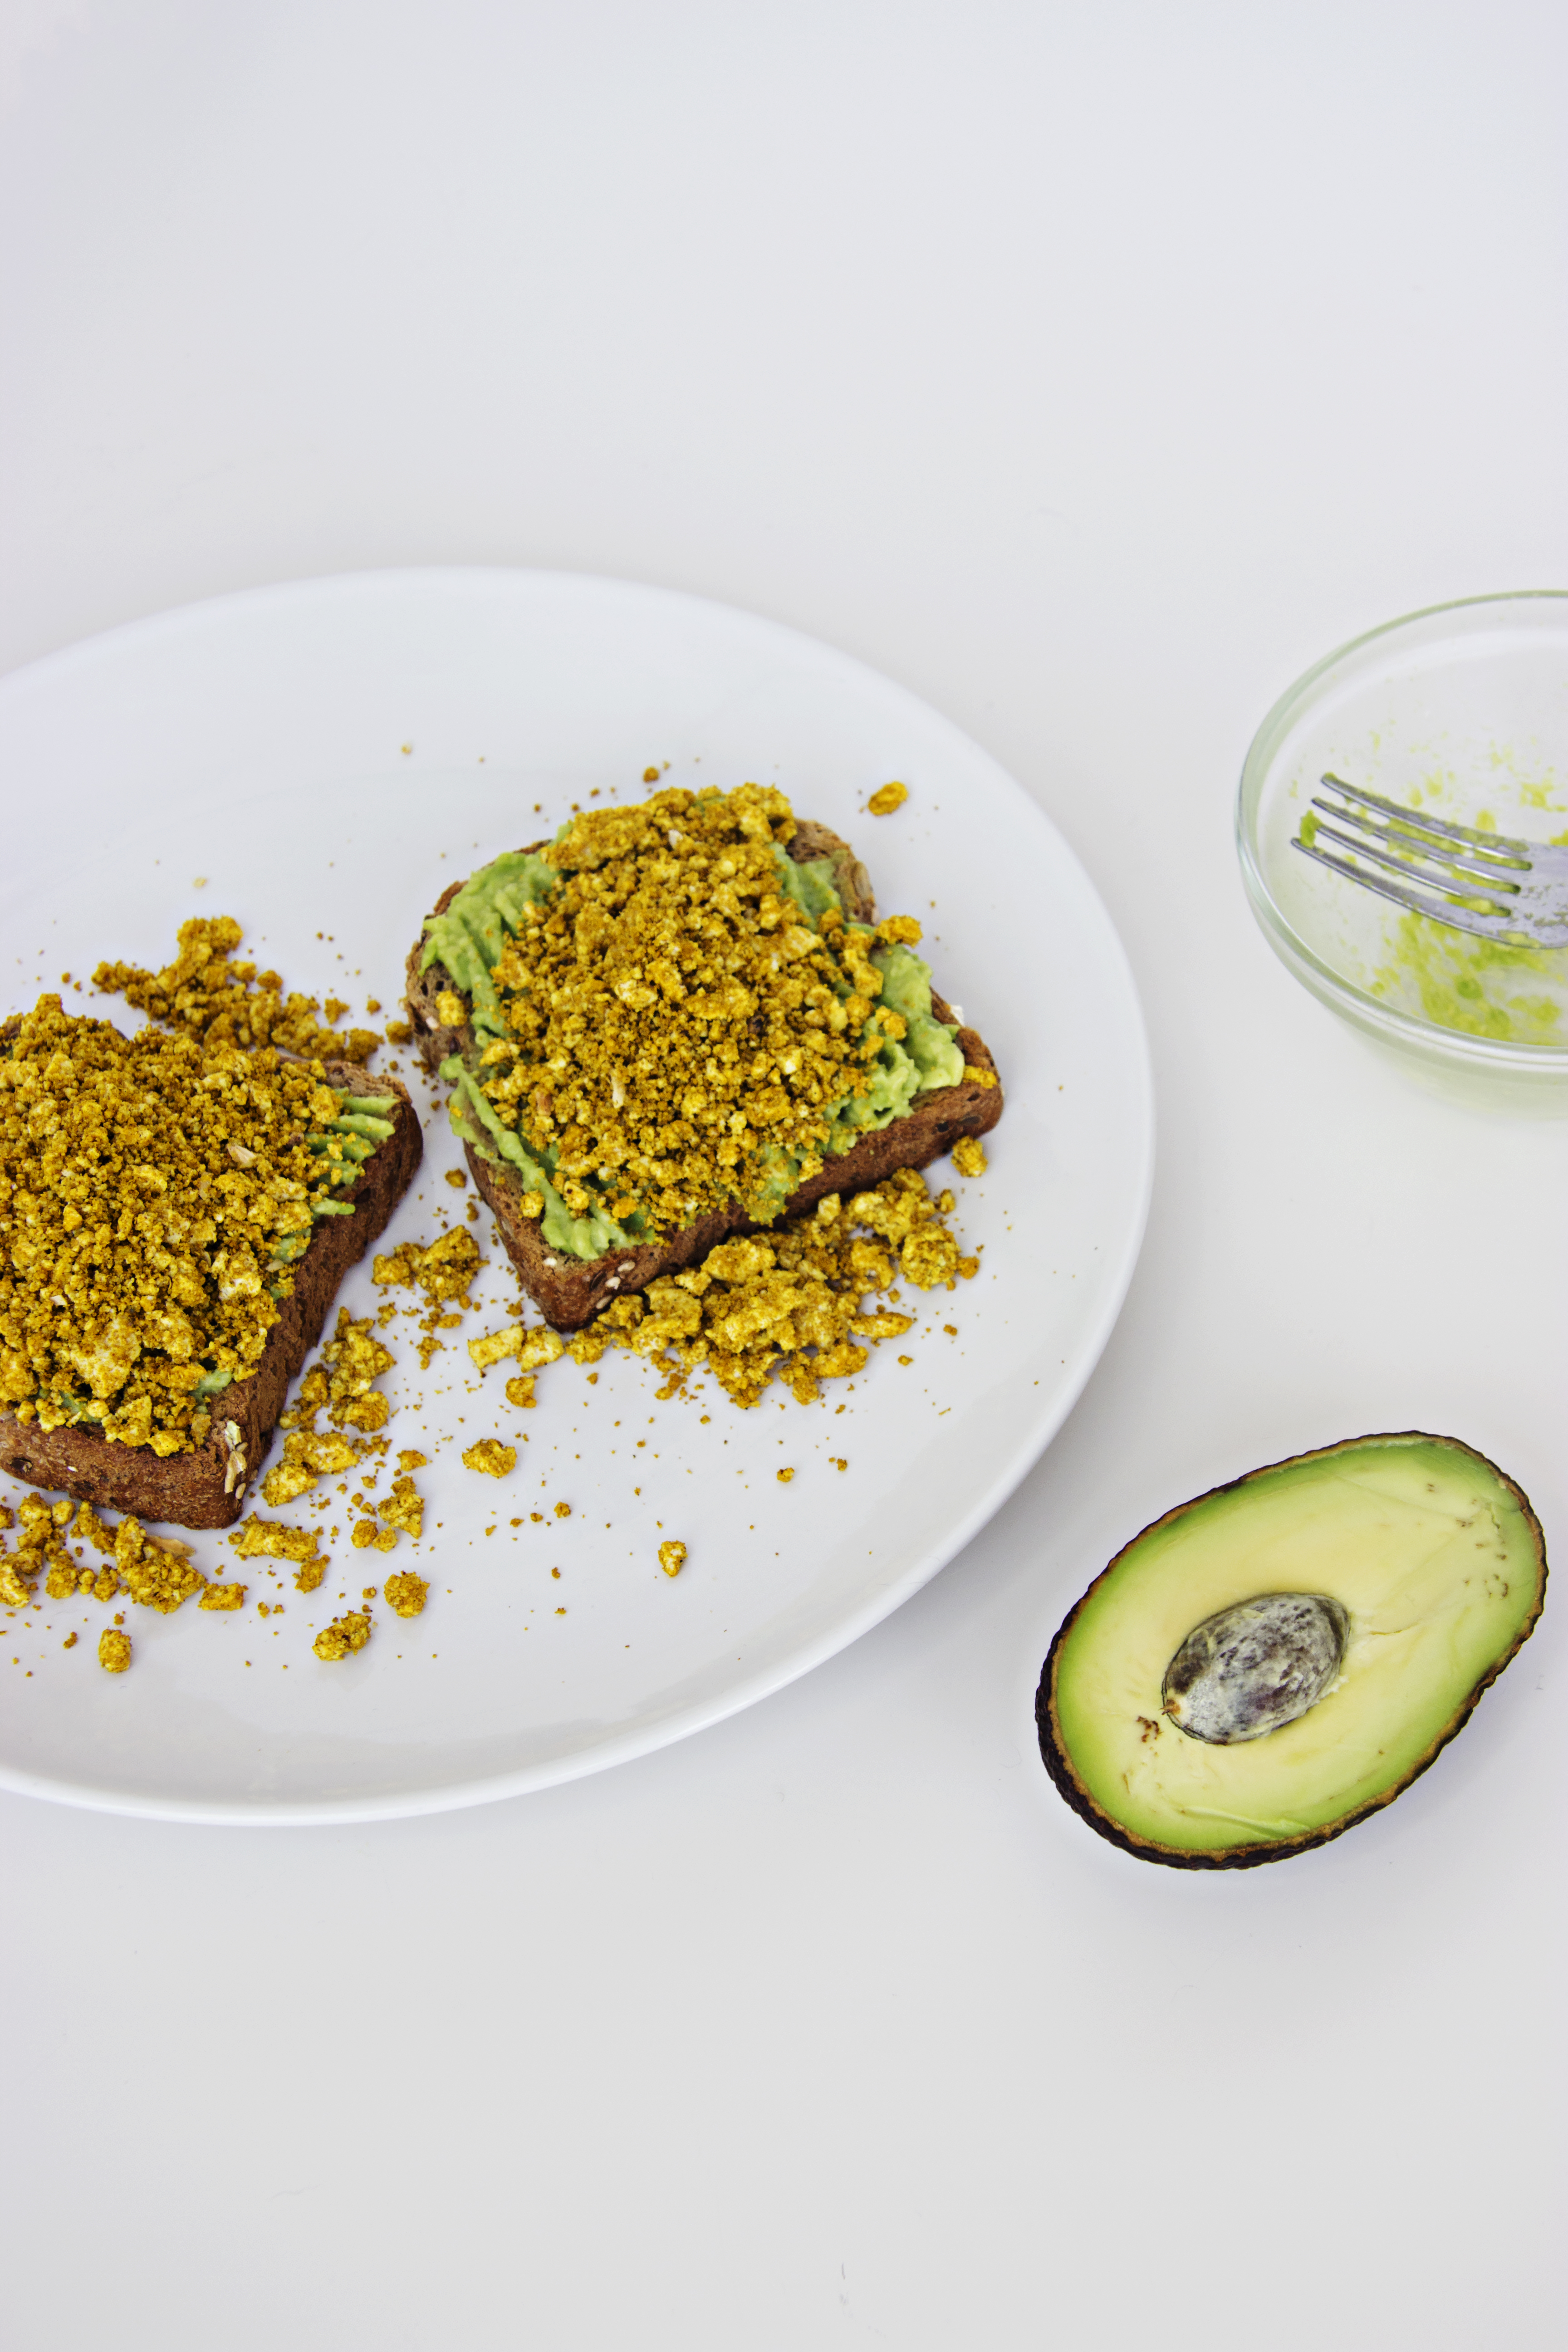 Torradas com Puré de Abacate e Tofu Mexido / Toast with Mashed Avocado and Scrambled Tofu